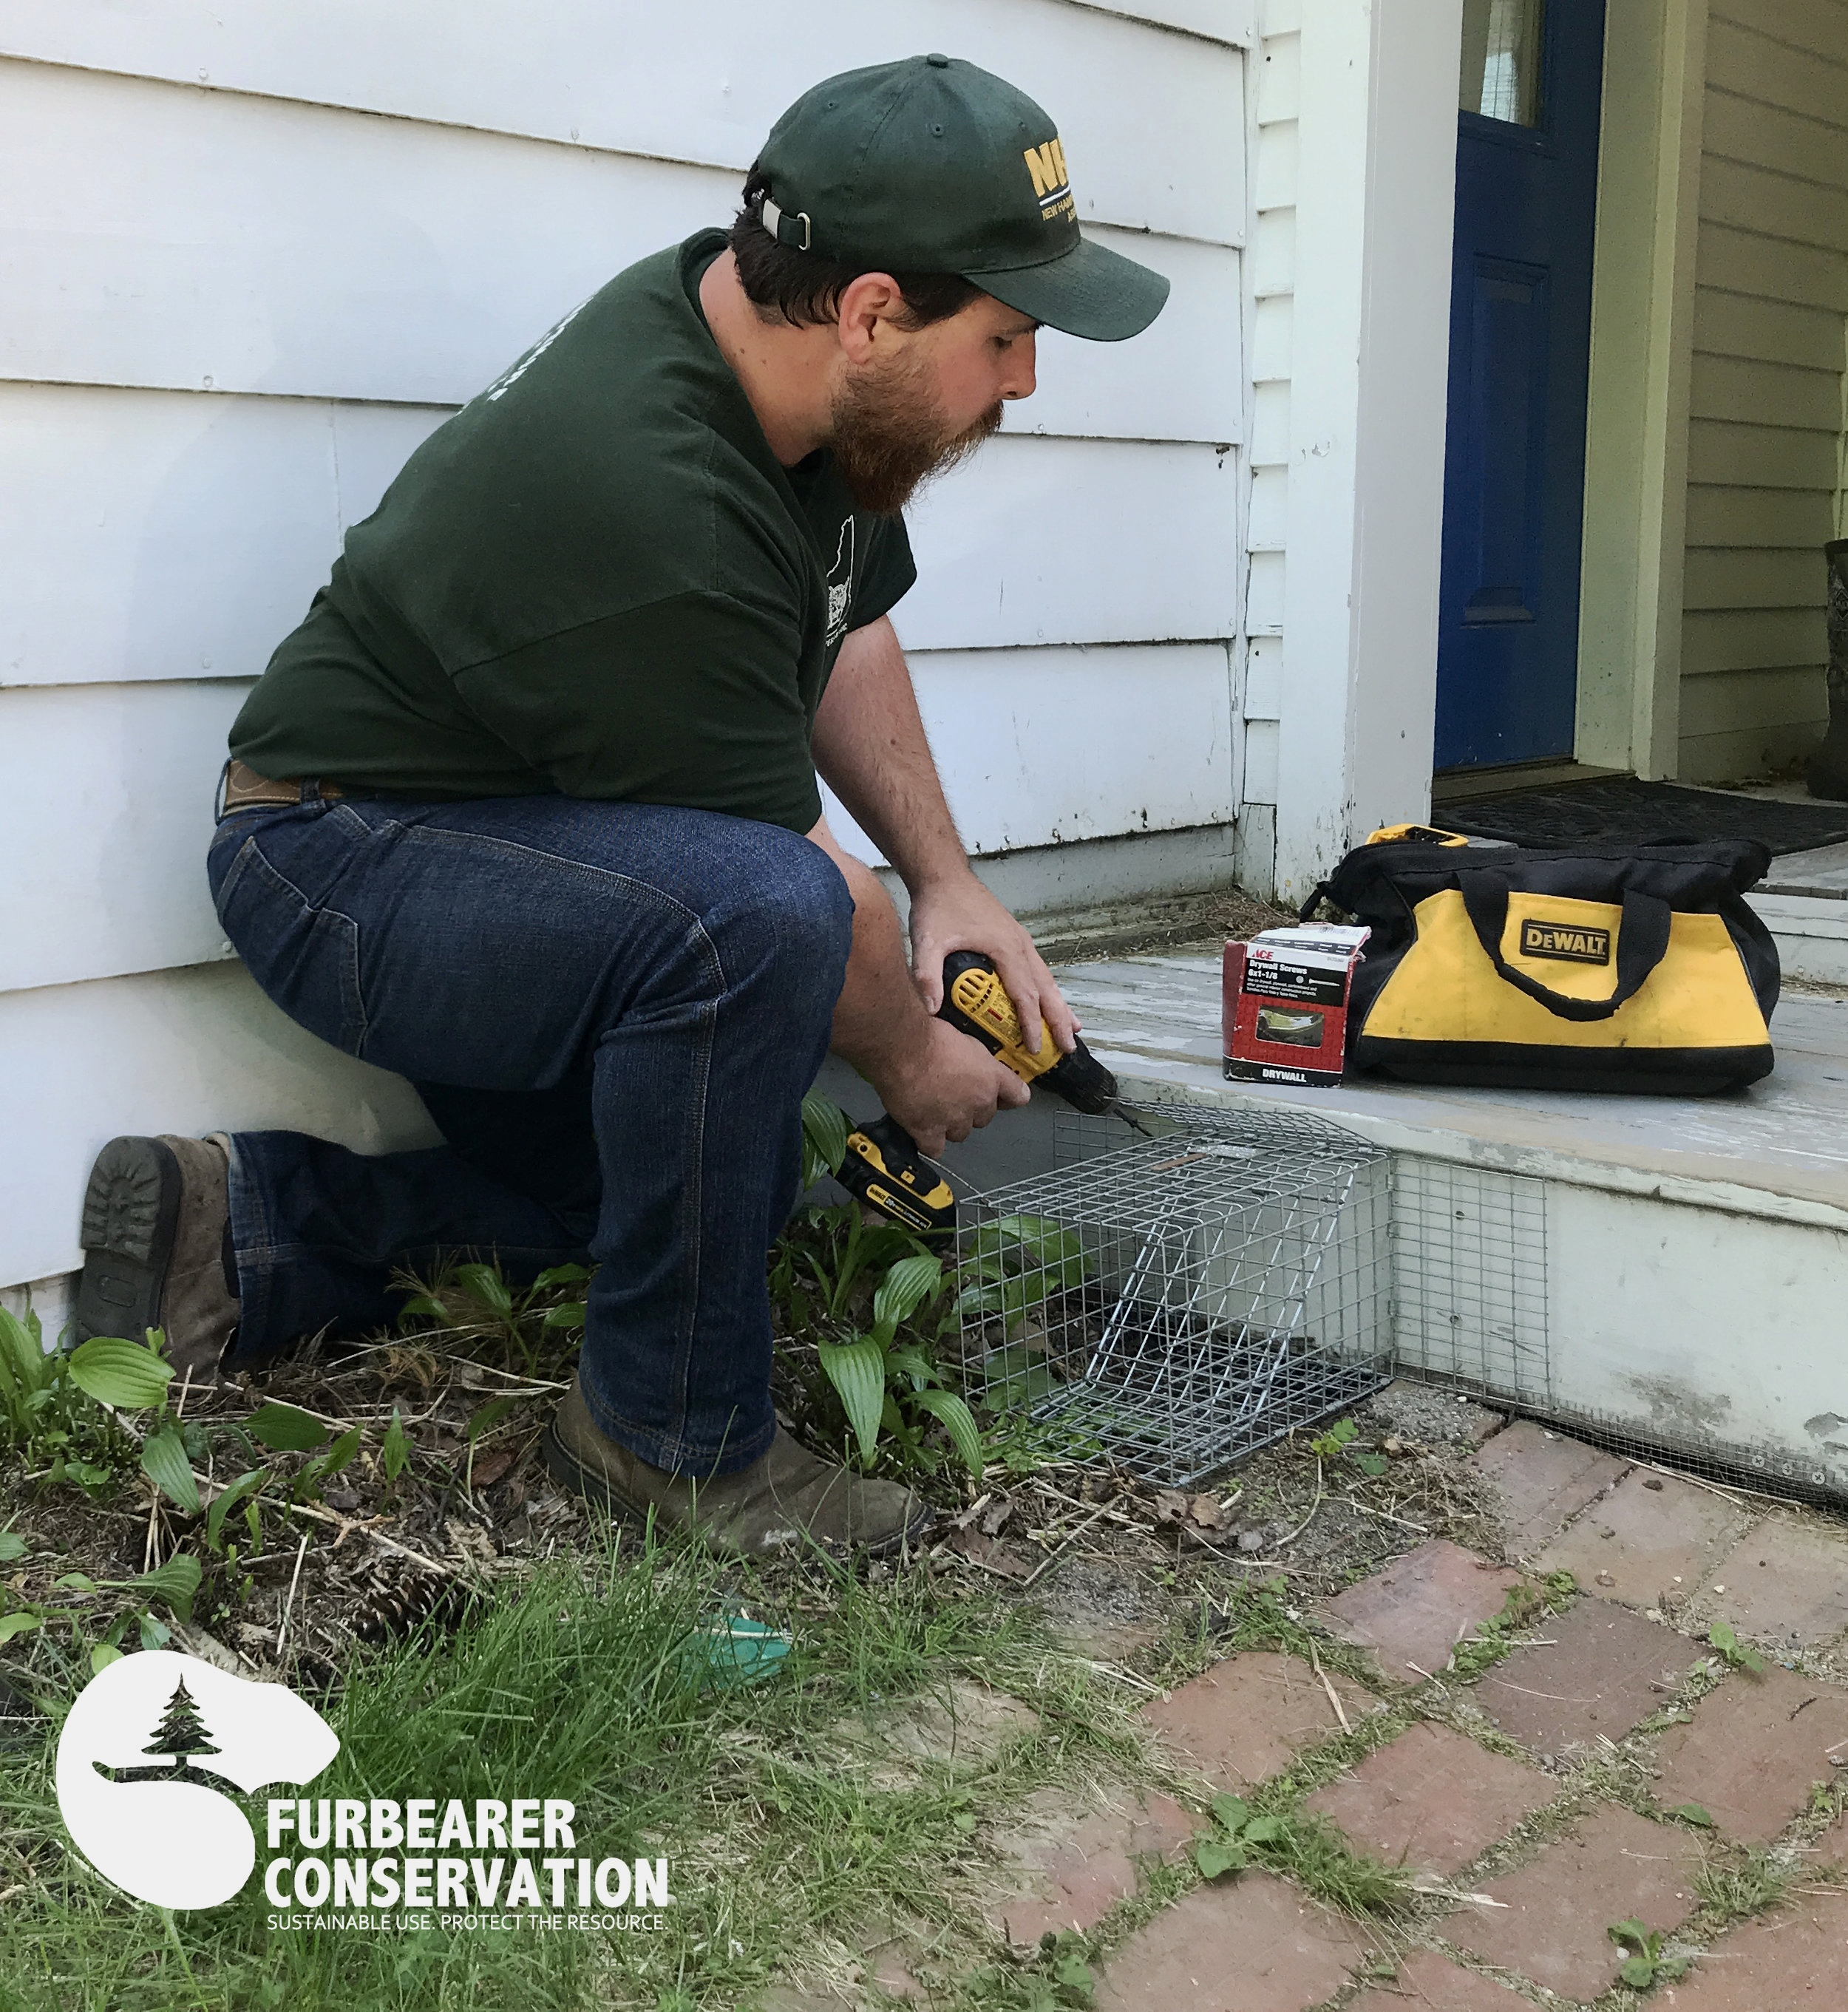 The author repositioning a One Way Exit Device for skunks living under a porch. The beauty of such a service allows for the eviction of animals from structures, without the need for relocation.